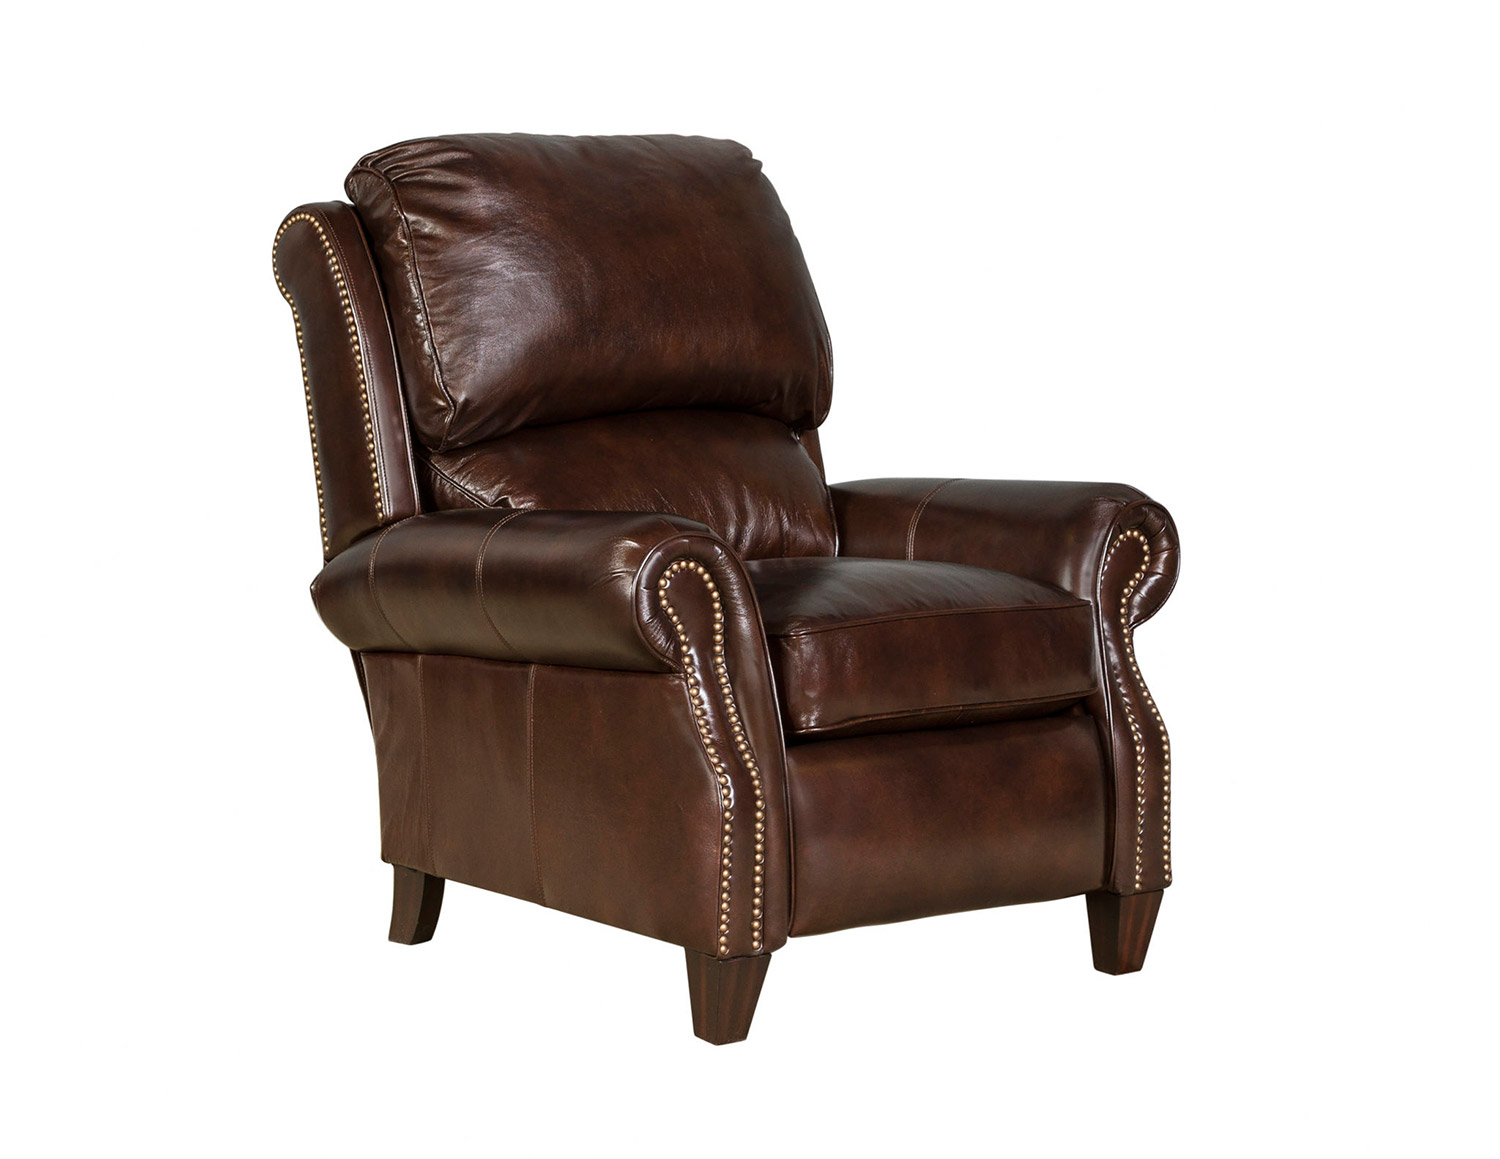 Barcalounger Churchill Recliner Chair - Double Fudge/All Leather